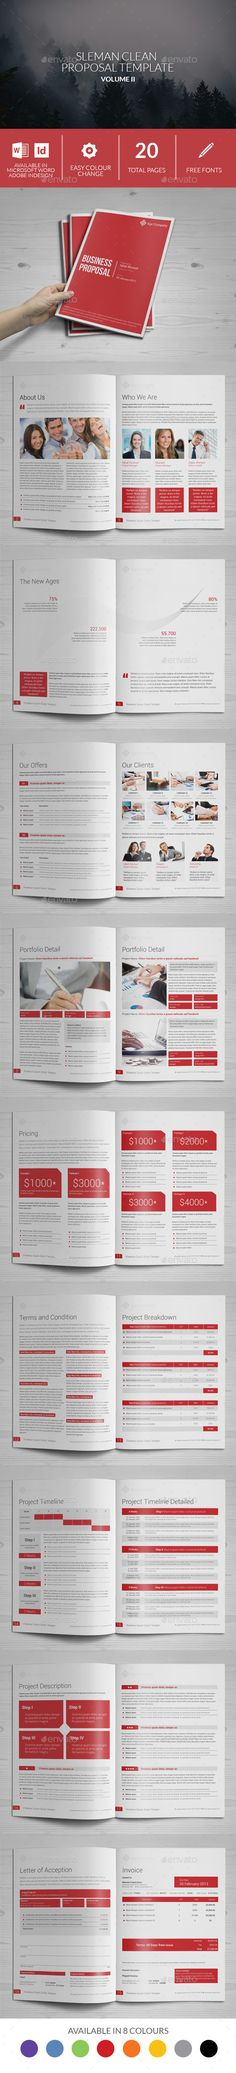 Proposal Proposals, Proposal templates and Brochures - marketing proposal templates